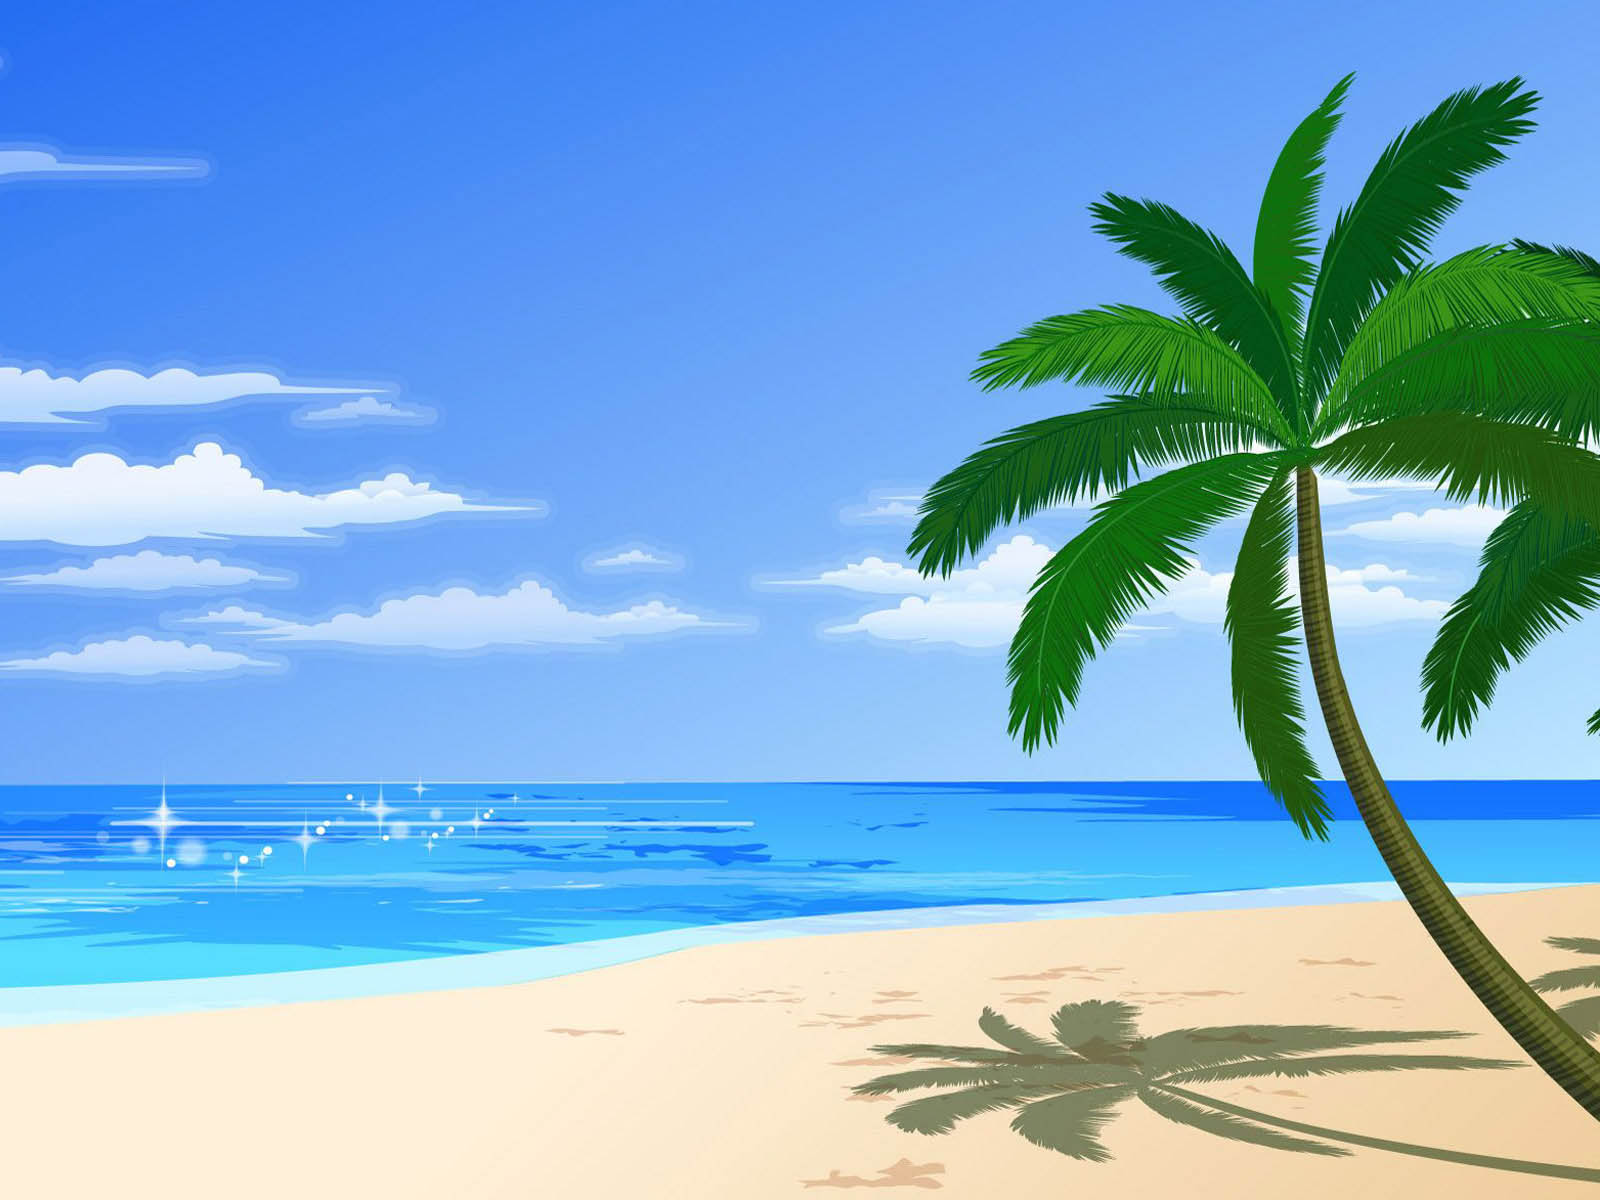 Clipart beach background clipart library library Free Tropical Beach Cliparts, Download Free Clip Art, Free Clip Art ... clipart library library